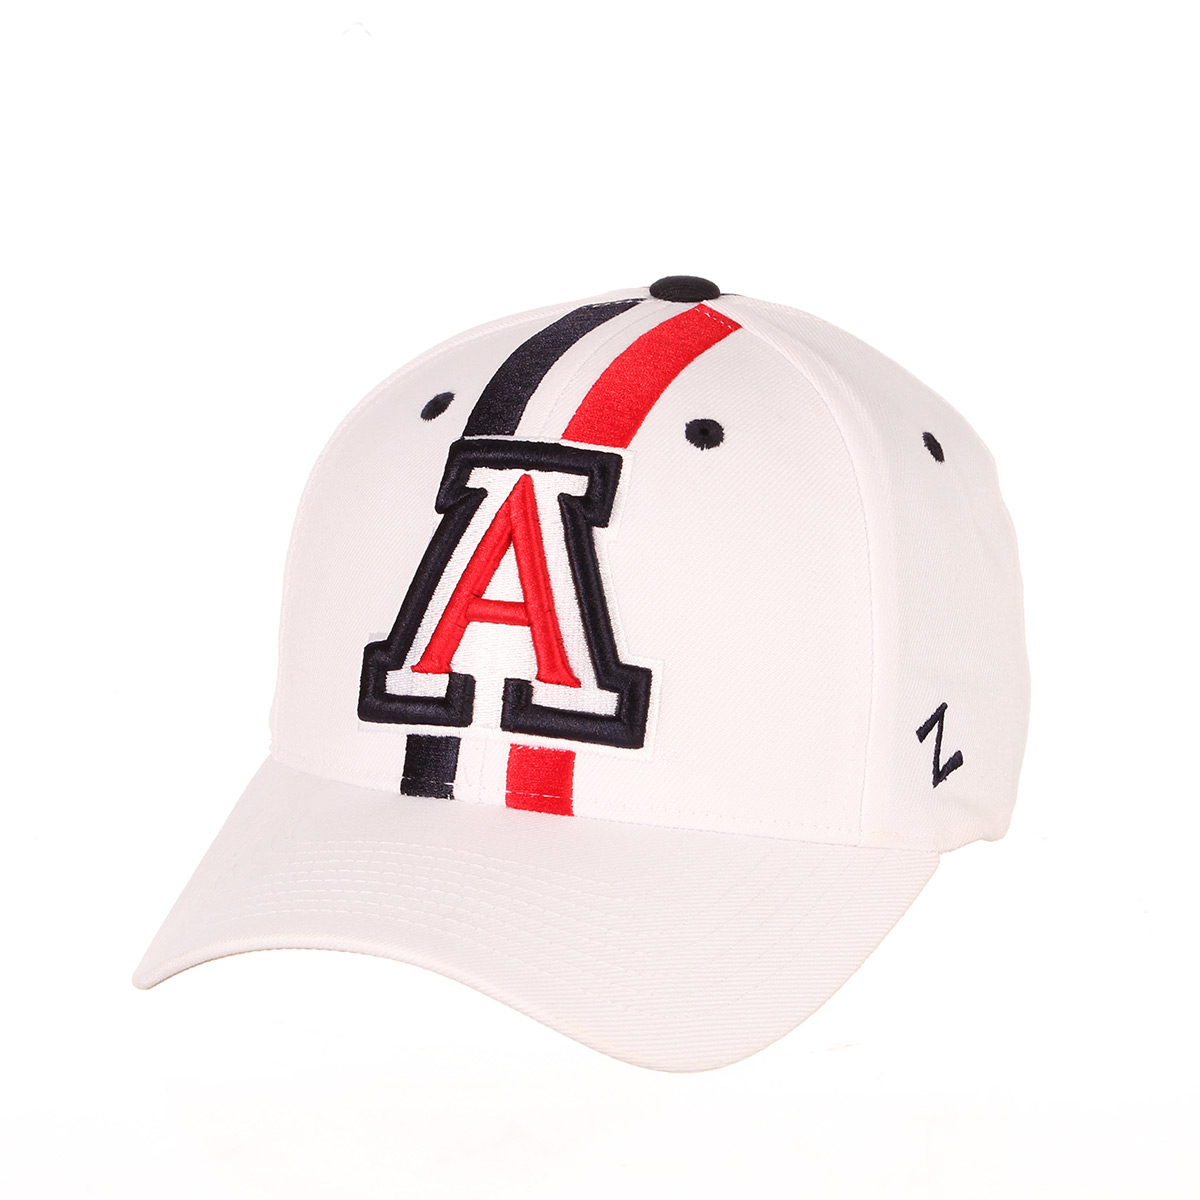 Image For Zephyr: Arizona DESERT SWARM TEDY BRUSCHI Curve Bill Cap